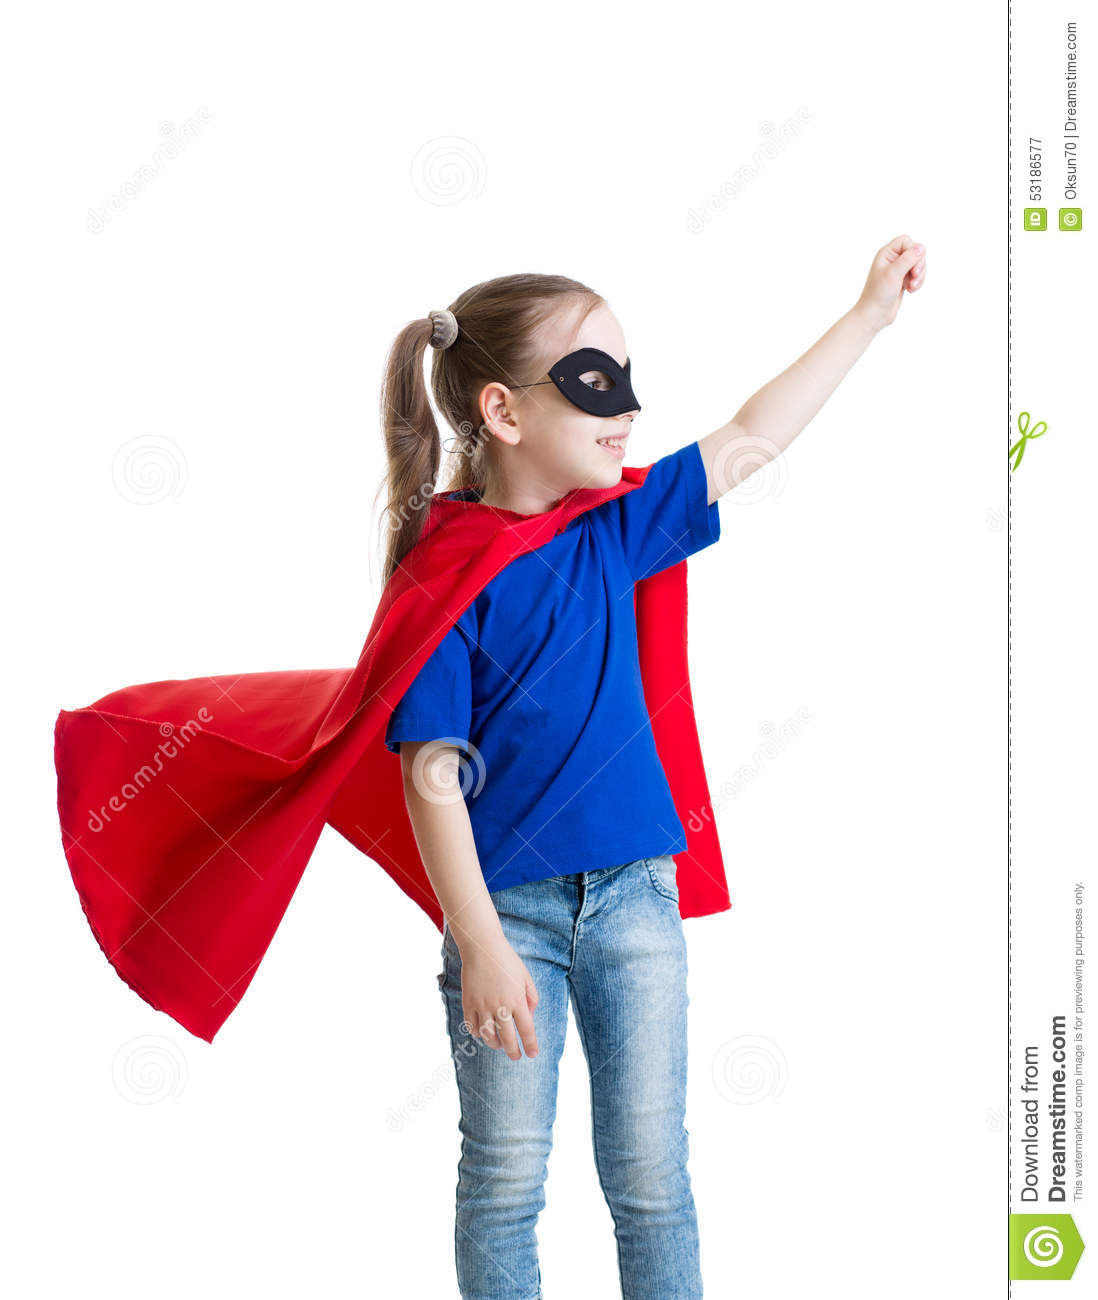 the image of a child hero Download royalty-free superhero child on beach super hero kid having fun outdoor summer vacation concept stock photo 151062316 from depositphotos collection of millions of premium high-resolution stock photos, vector images and illustrations.